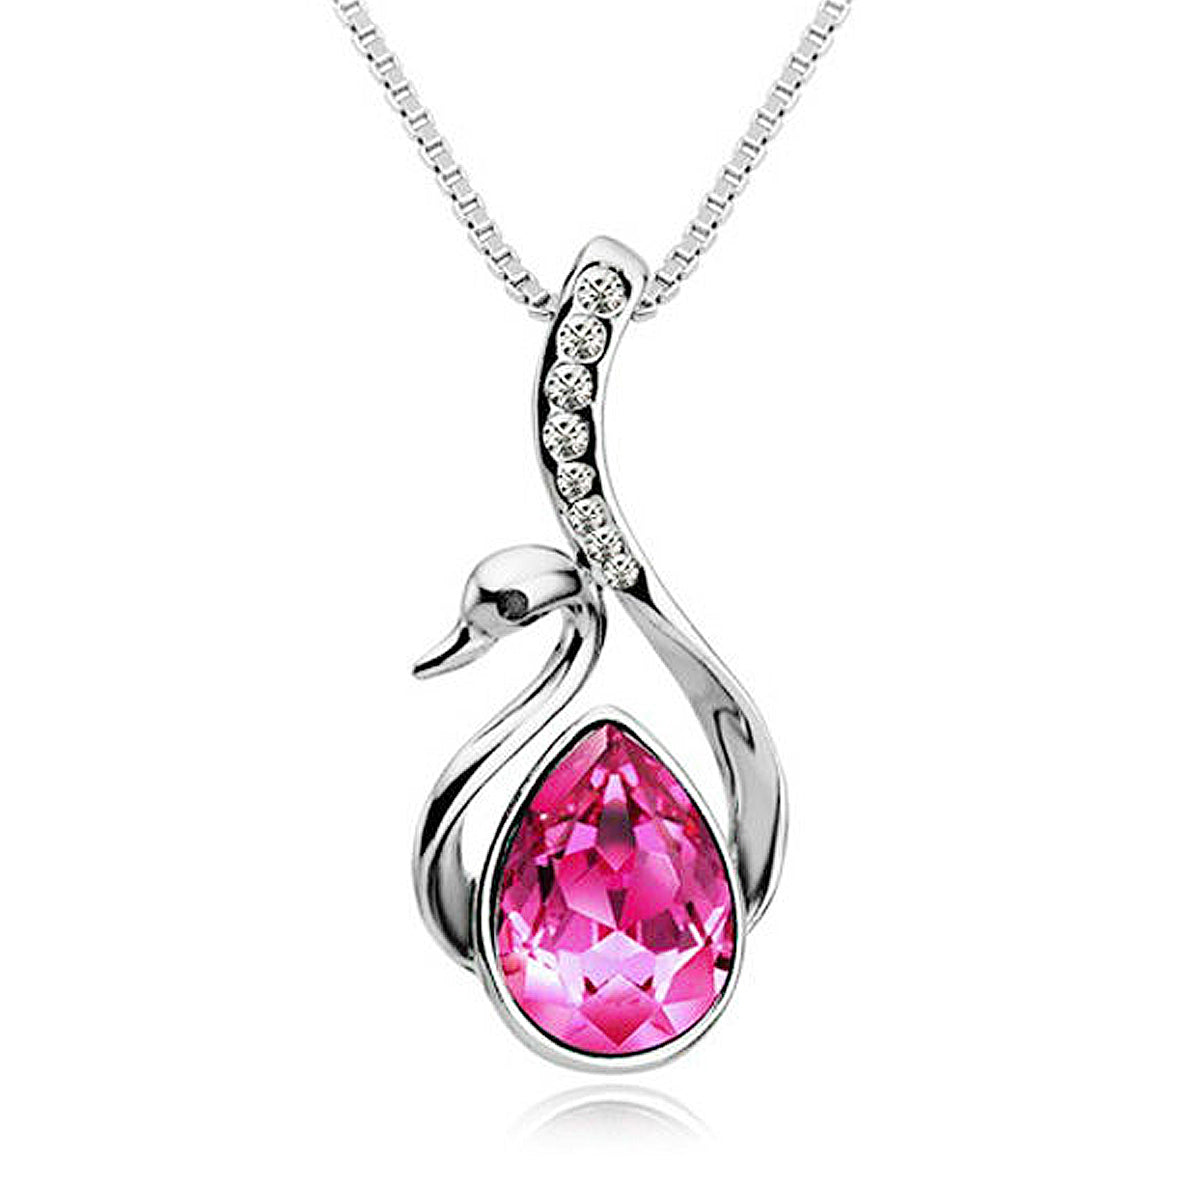 Wrapables Swarovski Elements Crystal Swan Pendant Necklace